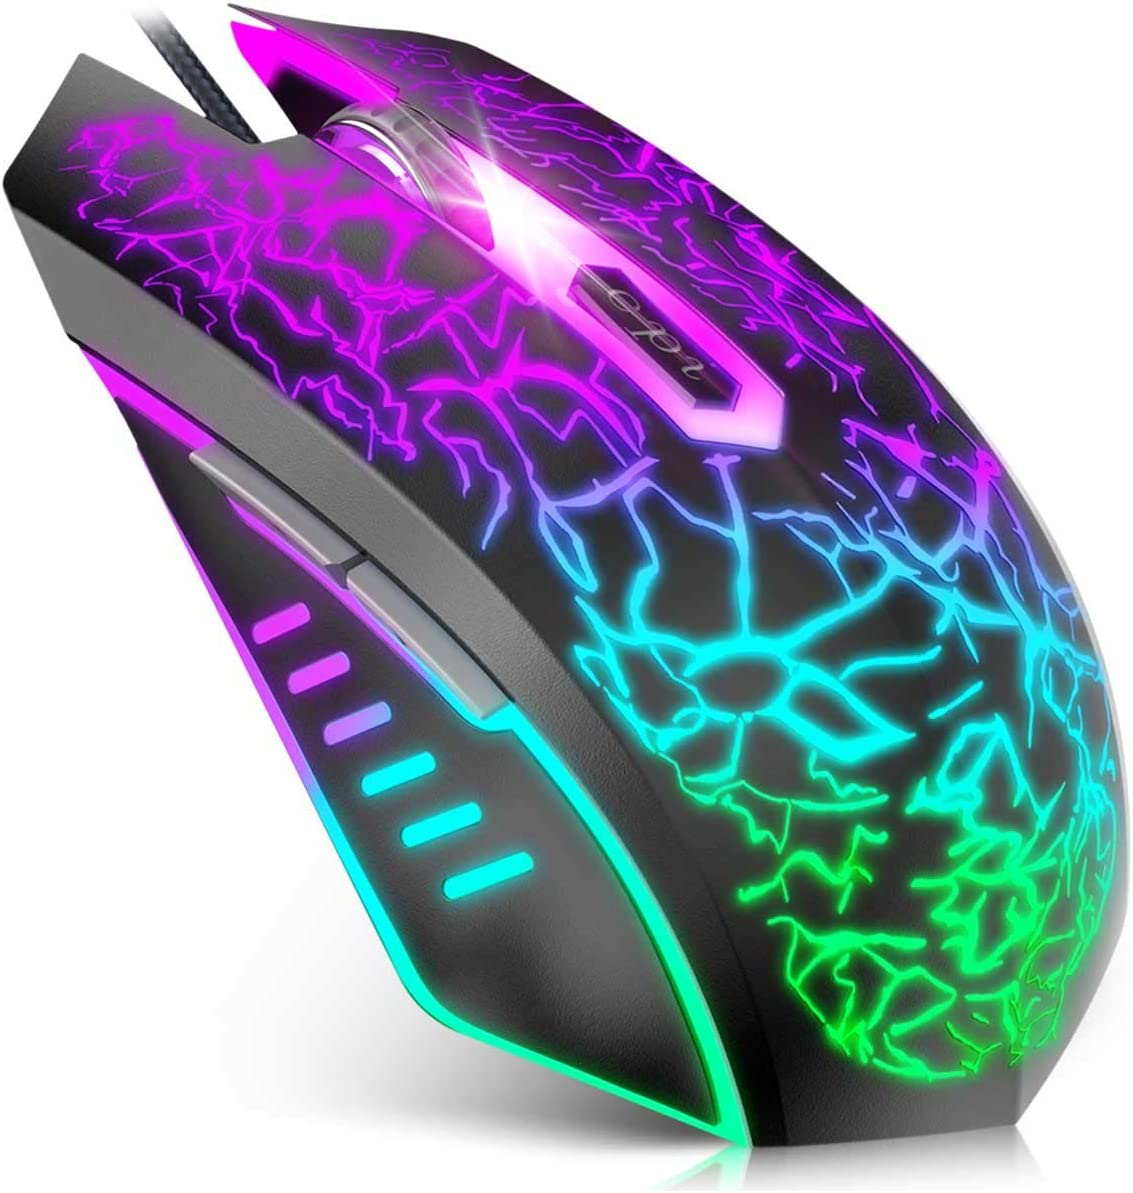 Best Gaming Mouse Under 10